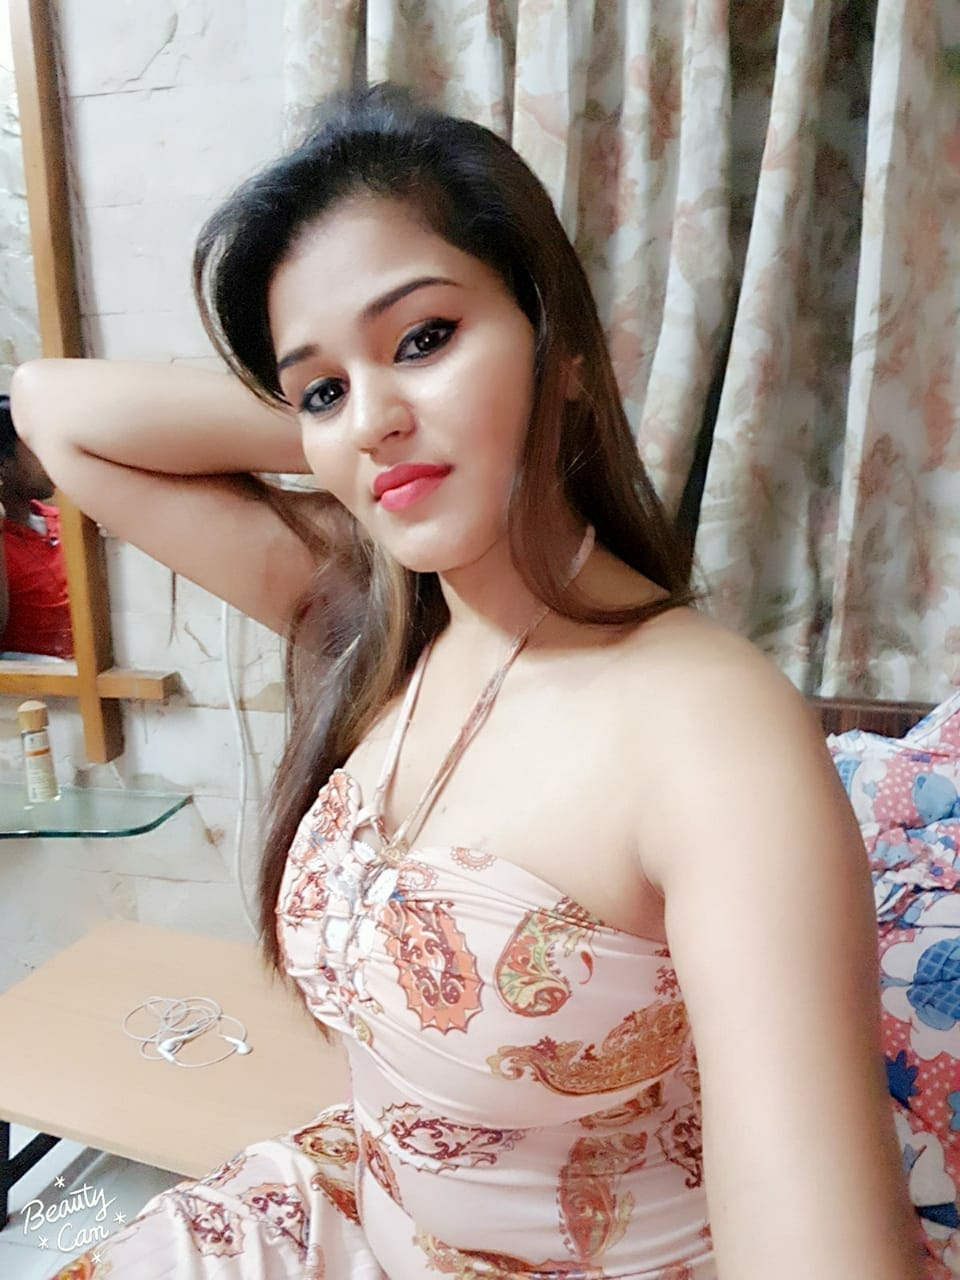 Russian Escorts In  in dana-bunder